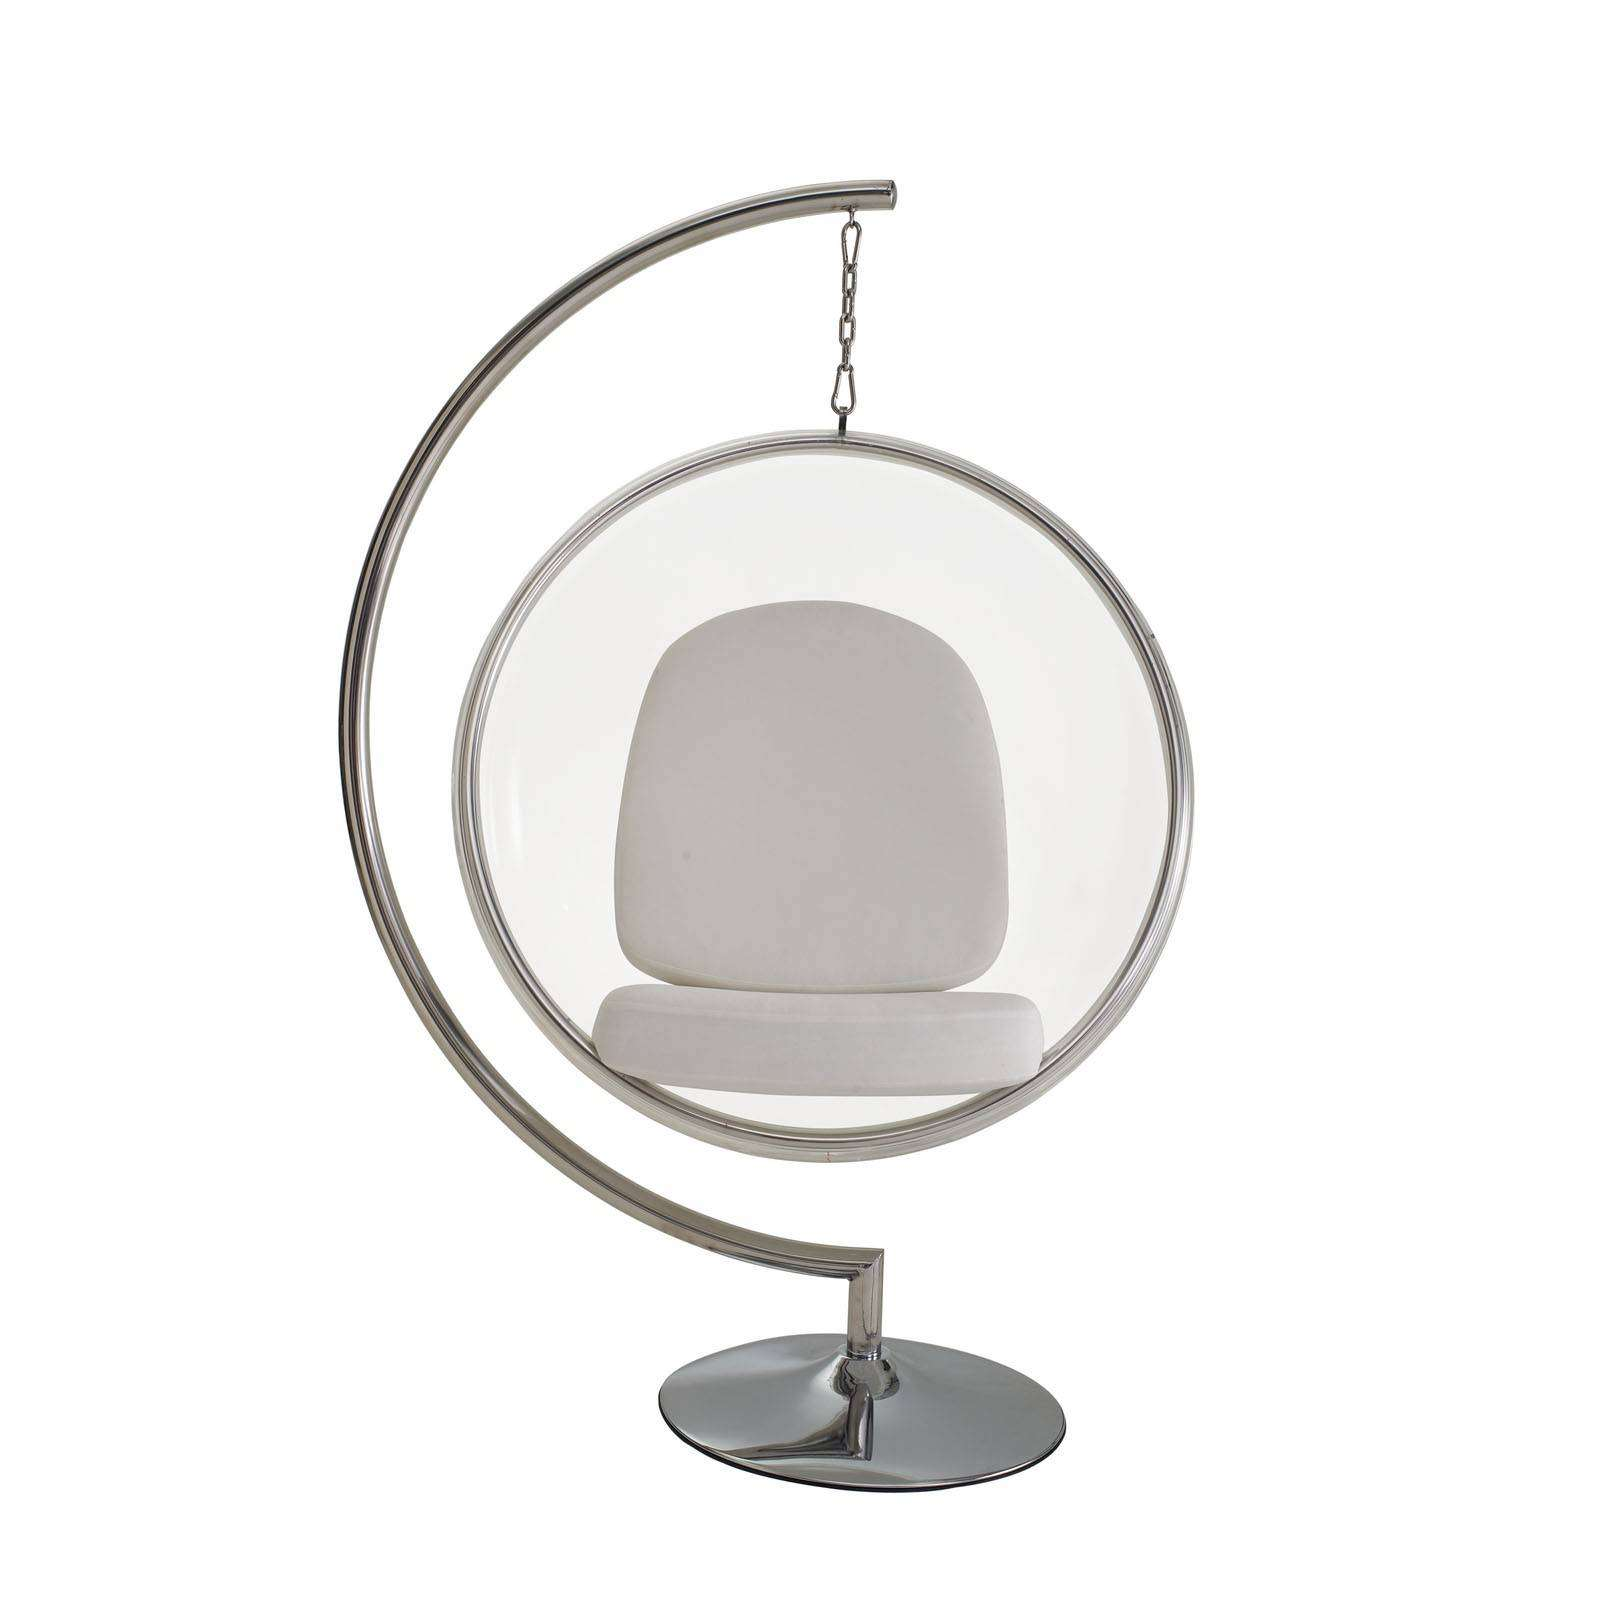 Bubble Chair Eero Aarnio Style Bubble Chair W Stand